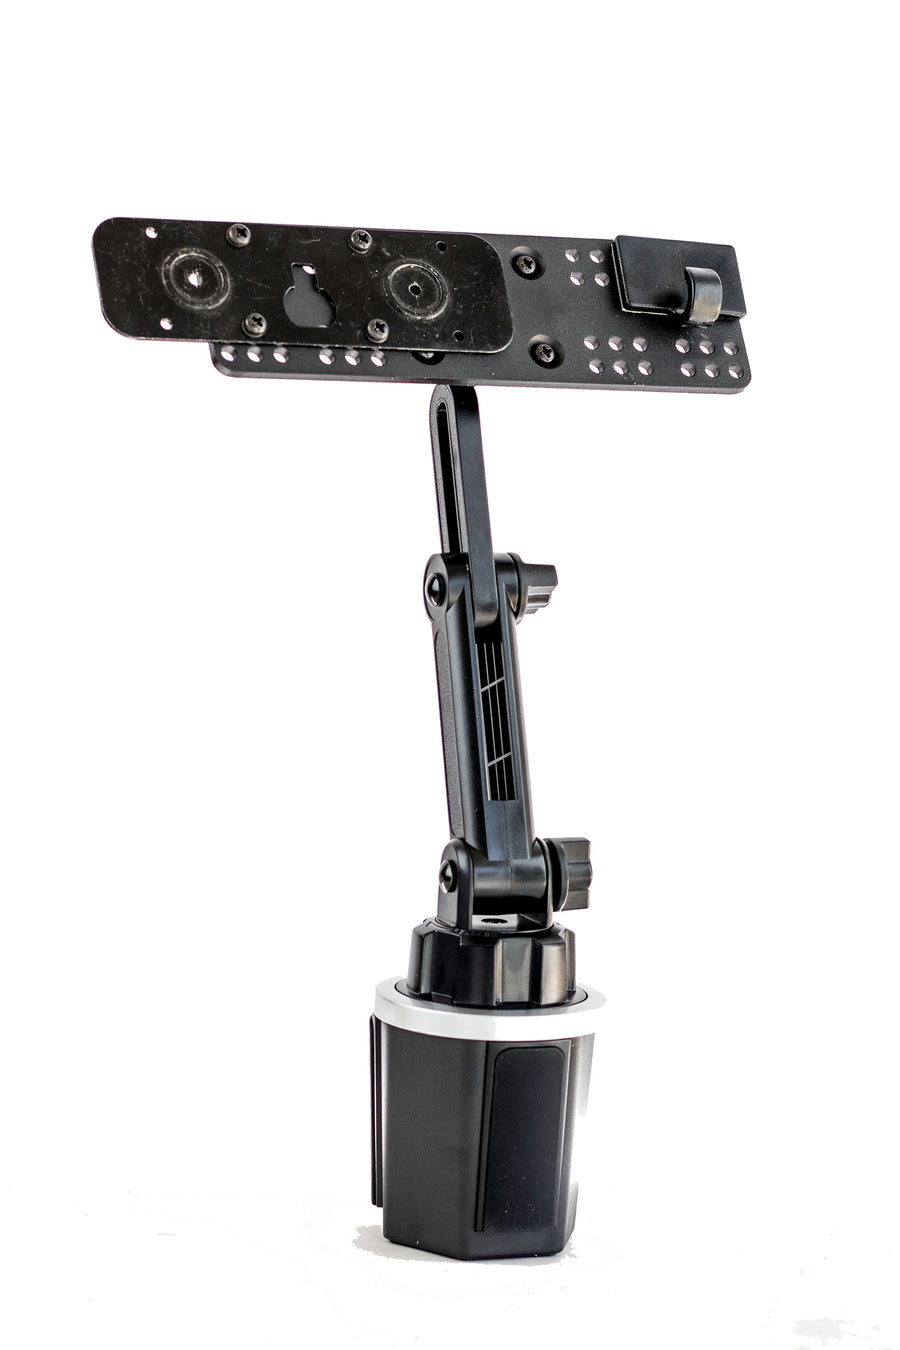 LM-803-EXT Adjustable Cup Holder Mount With Mic Holder For ID-5100 IC-2730